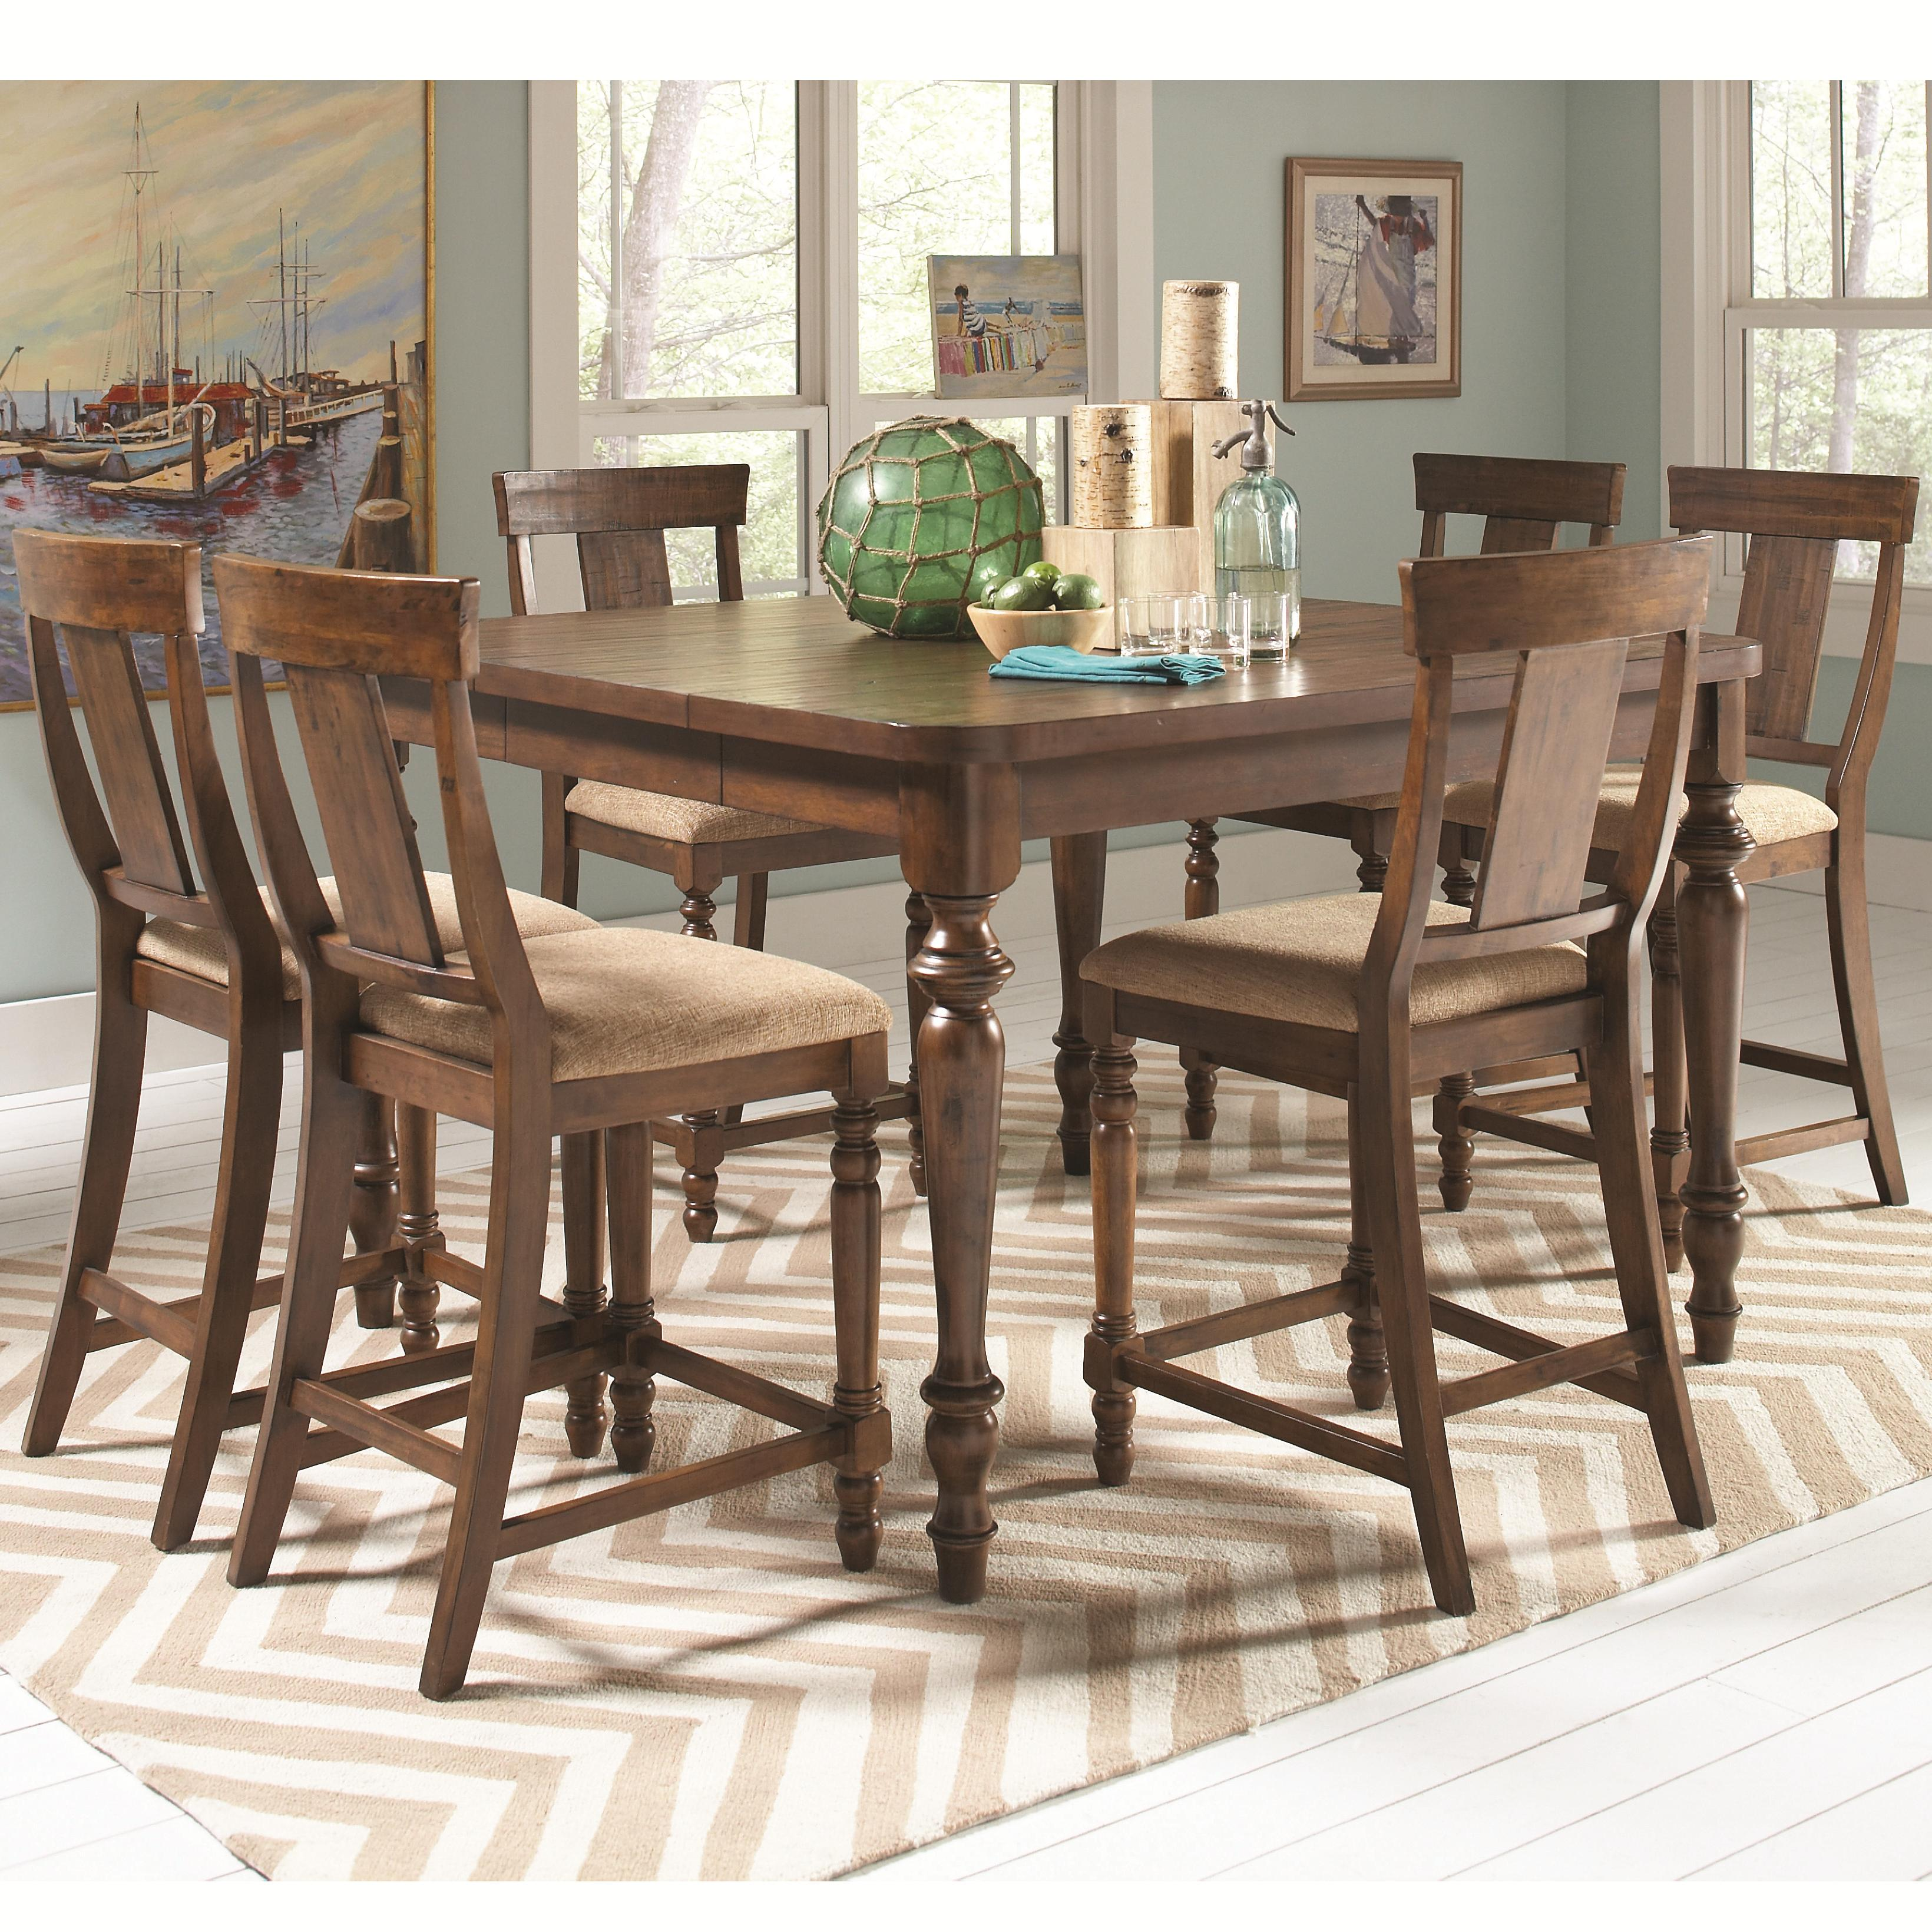 Jonas counter height table with 6 chairs quality for Jonas furniture